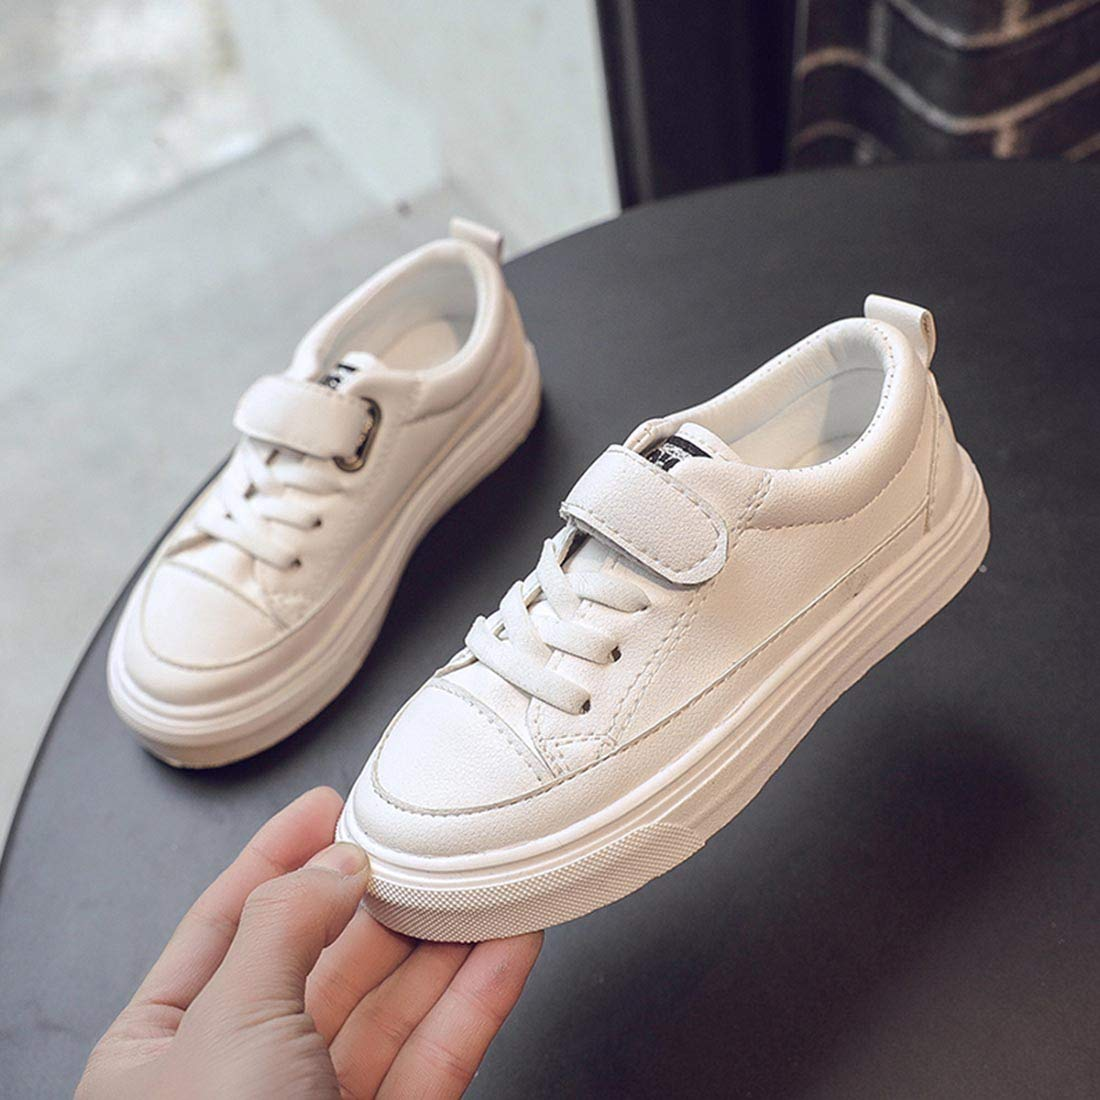 YIBLBOX Unisex Kids Boys Girls Low-Top Sneakers Pumps Trainers Walking Casual Shoes